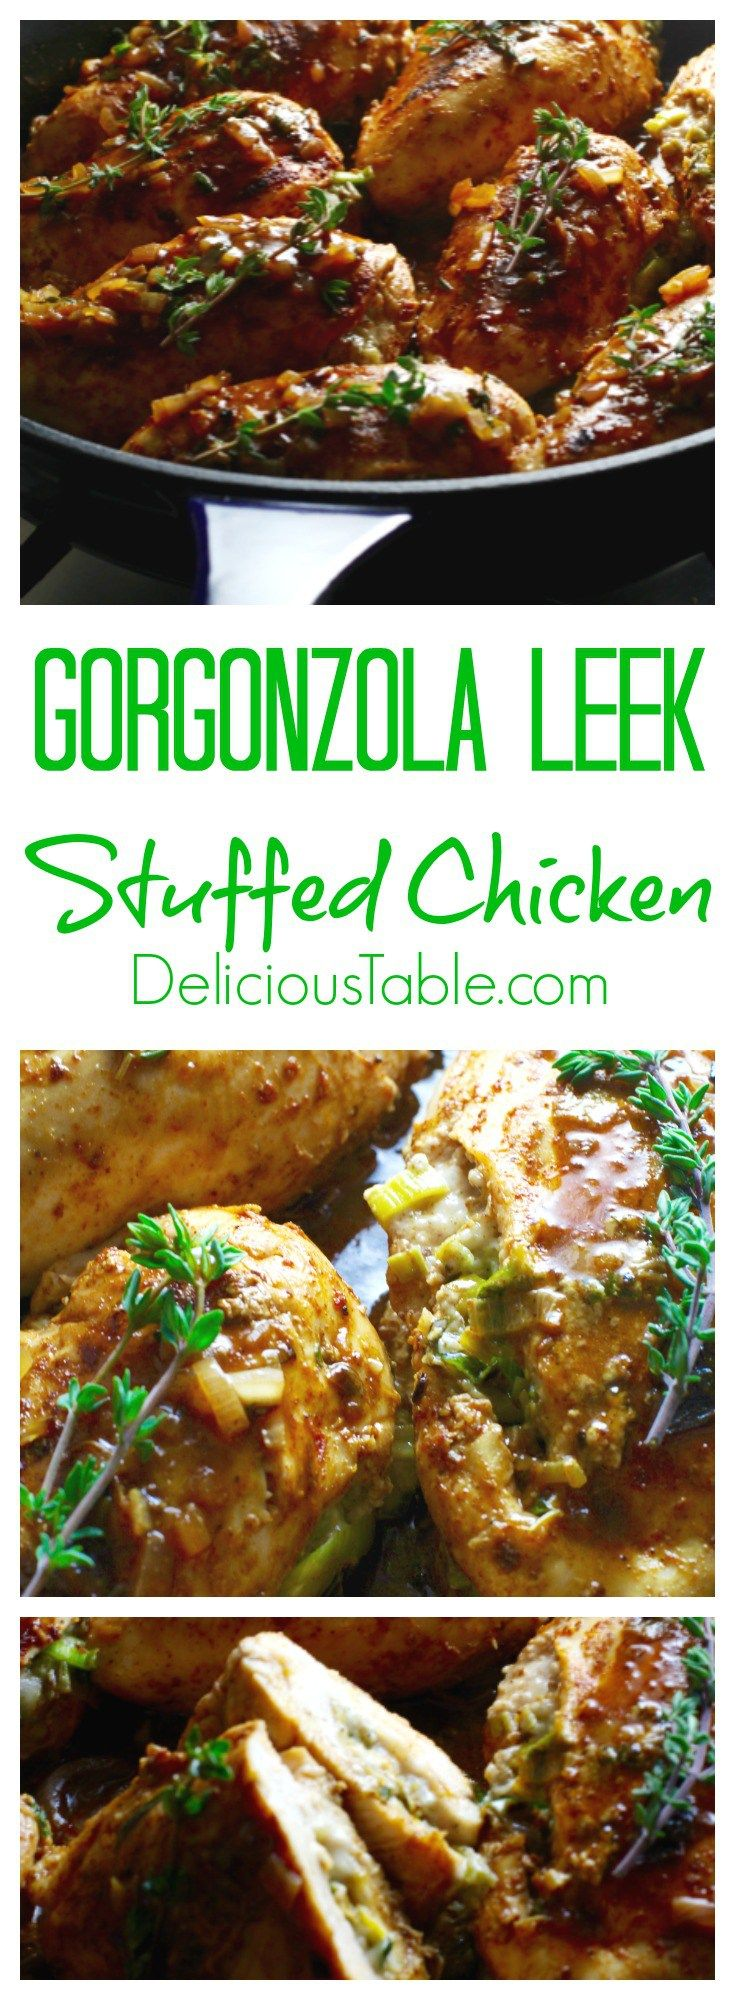 Make ahead one pan Gorgonzola Leek Stuffed Chicken is a hit for entertaining. Stuff the chicken, carmelize in one pan, and drizzle with the easy pan sauce!